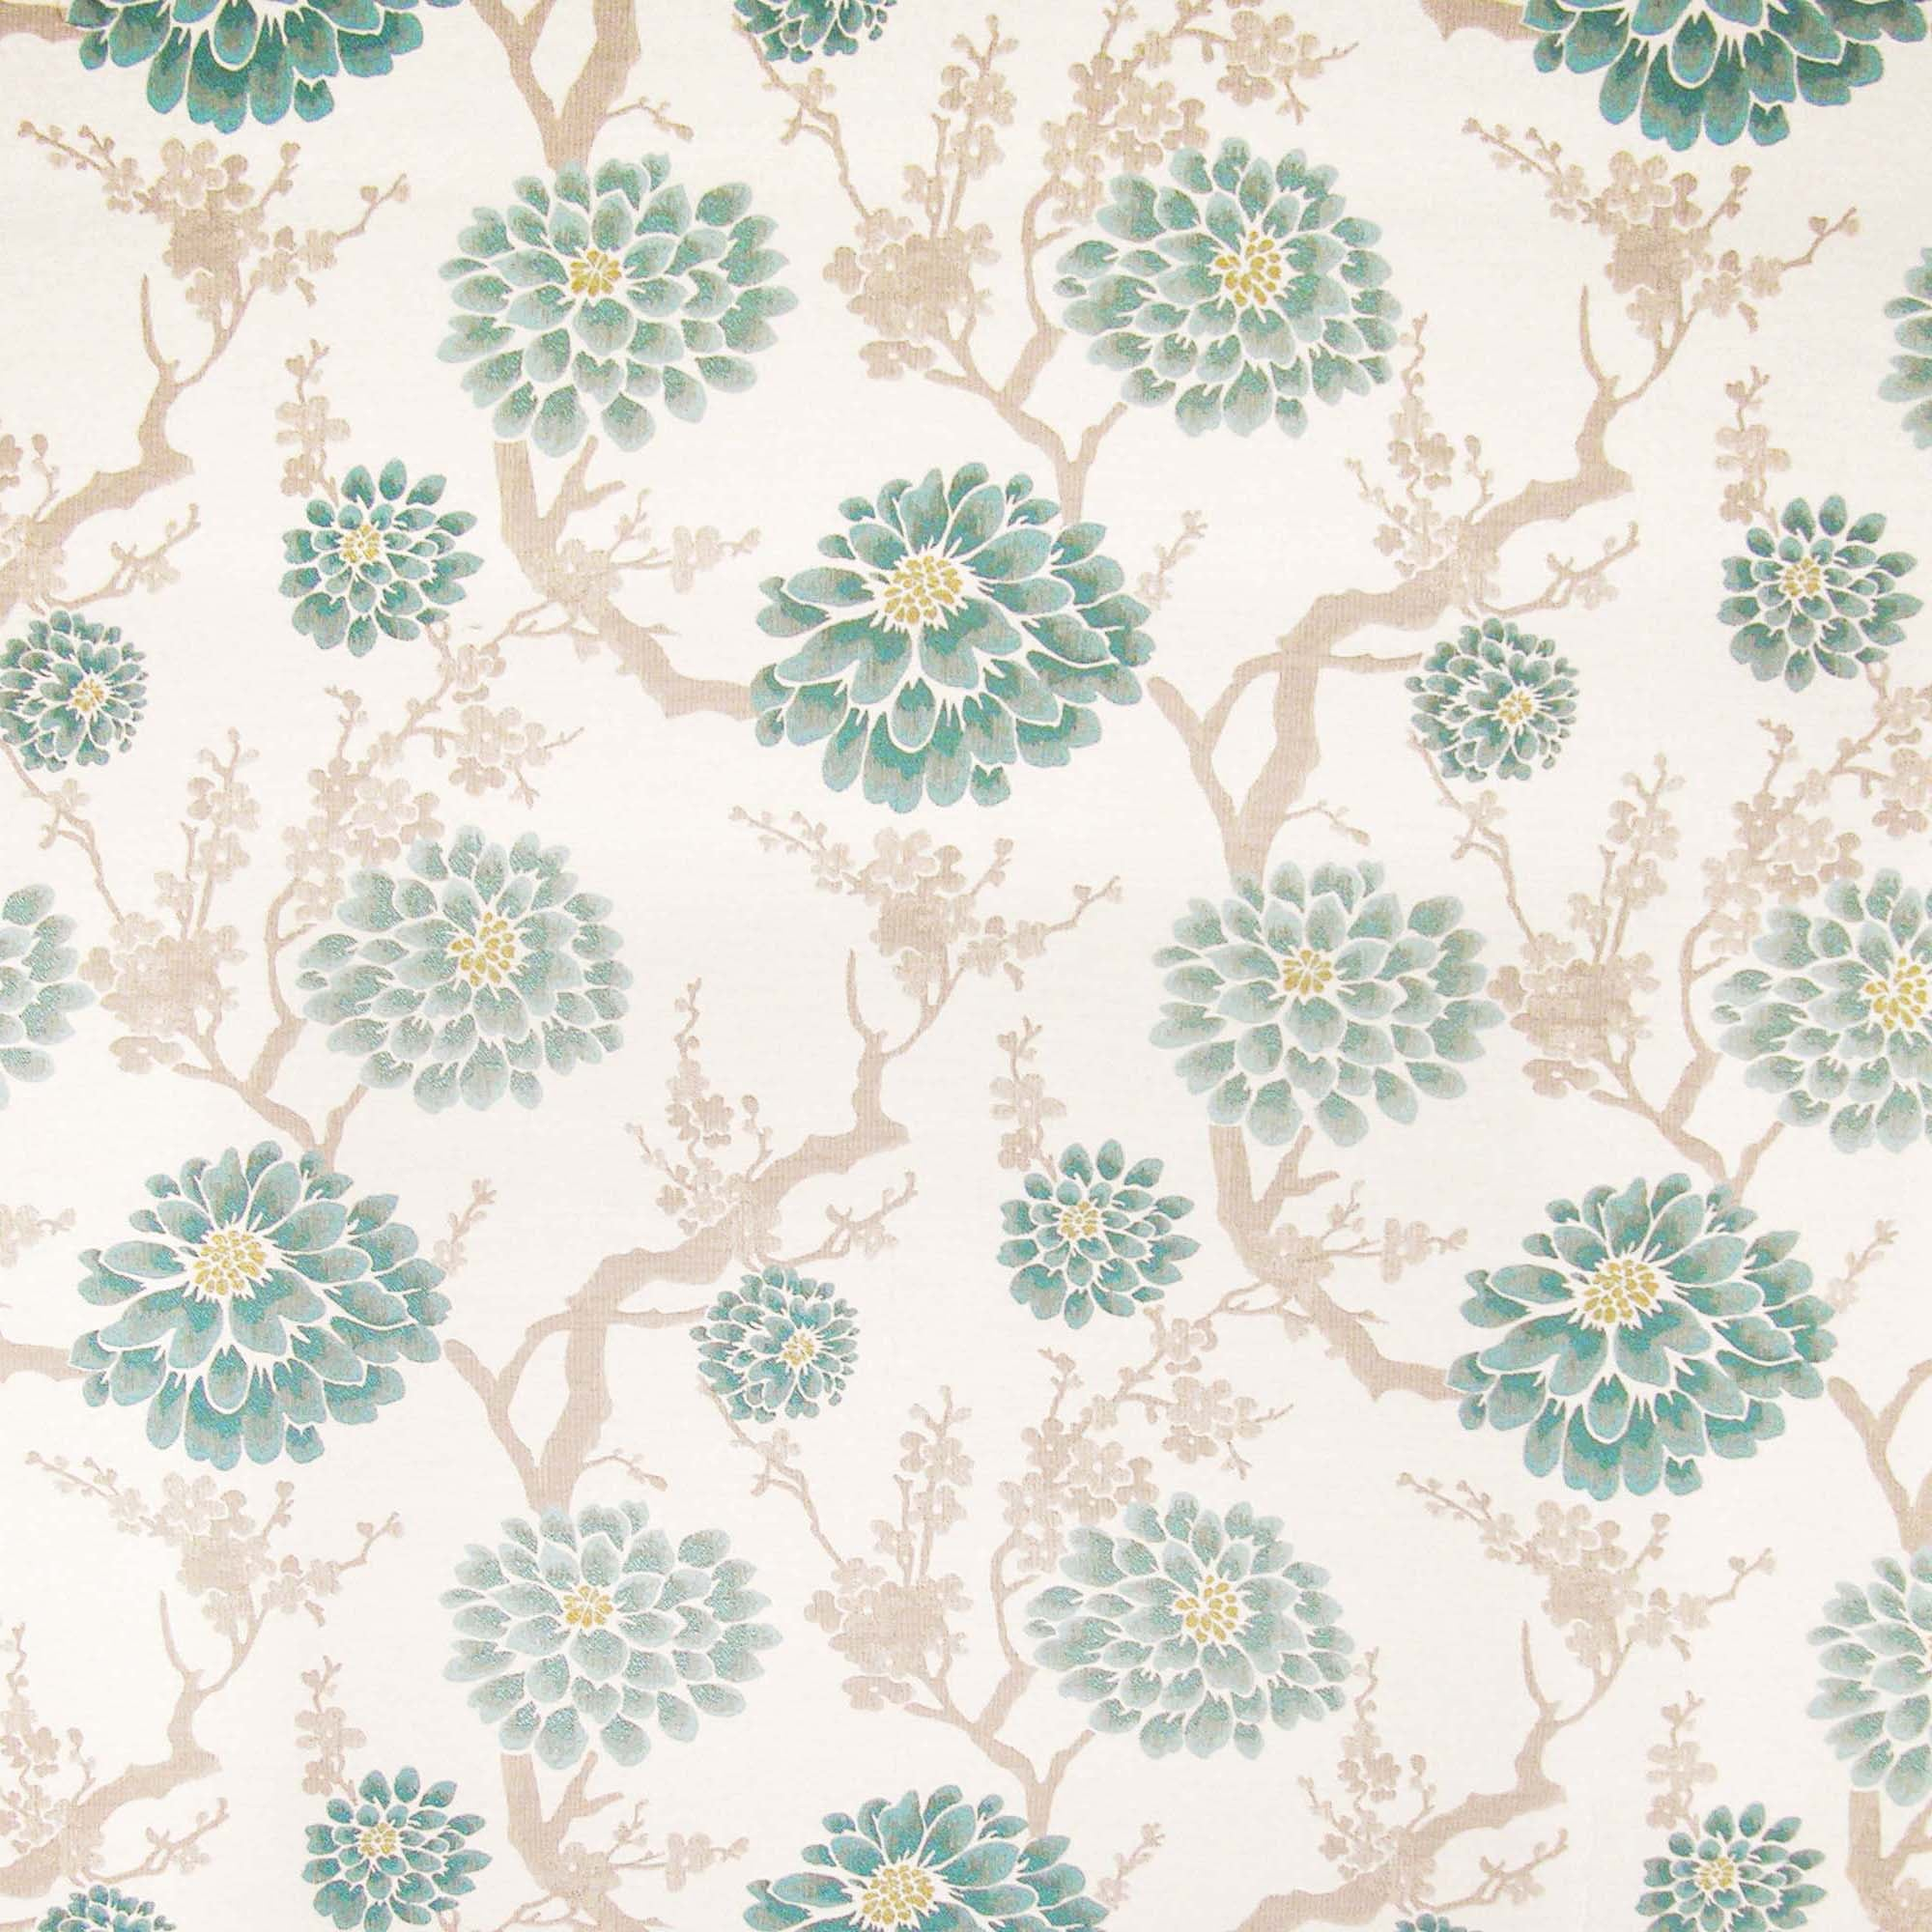 Ocean Alice Jacquard Fabric